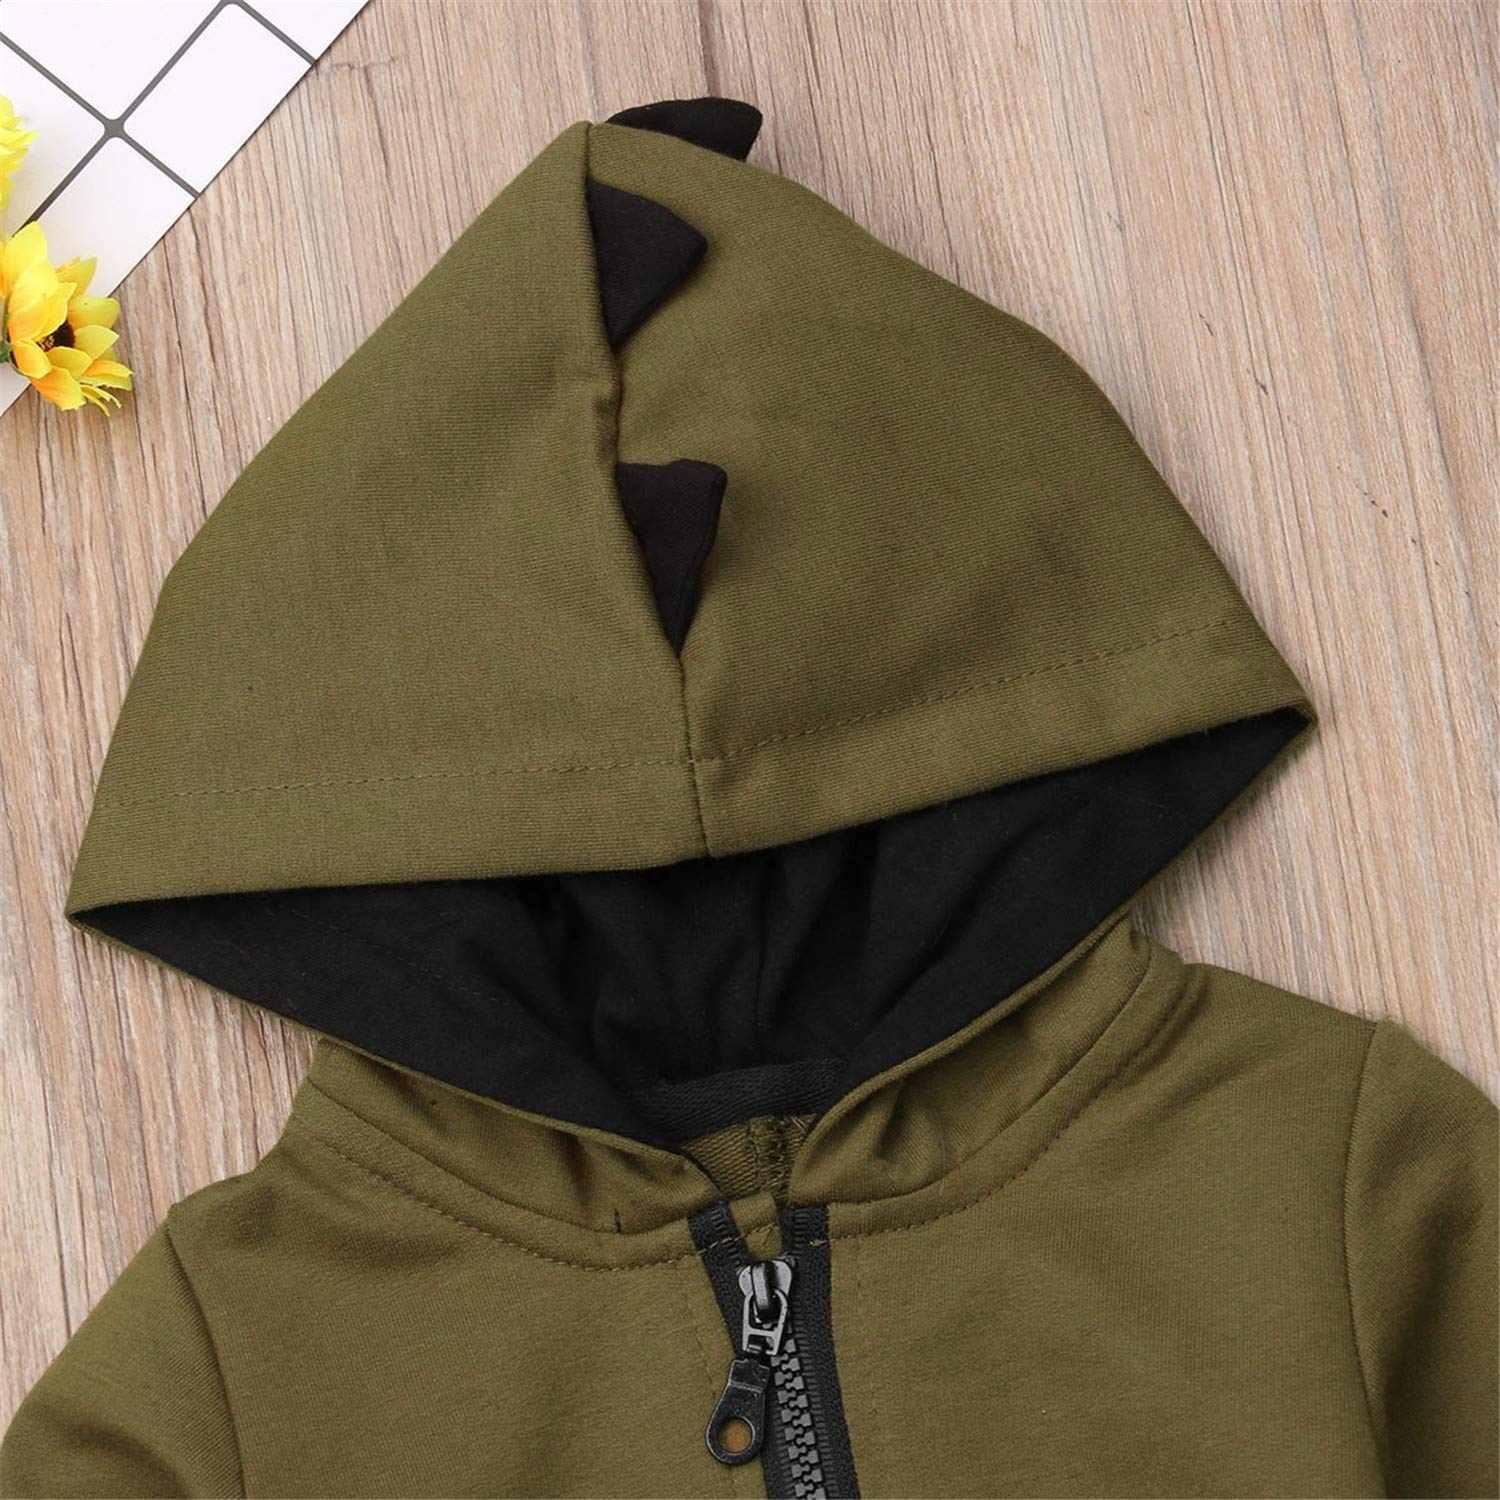 Dinosaur Newborn Infant Infant Boy Girl Hooded Romper Jumpsuit Clothing Outfit Long Sleeve Princess or Queen Prince